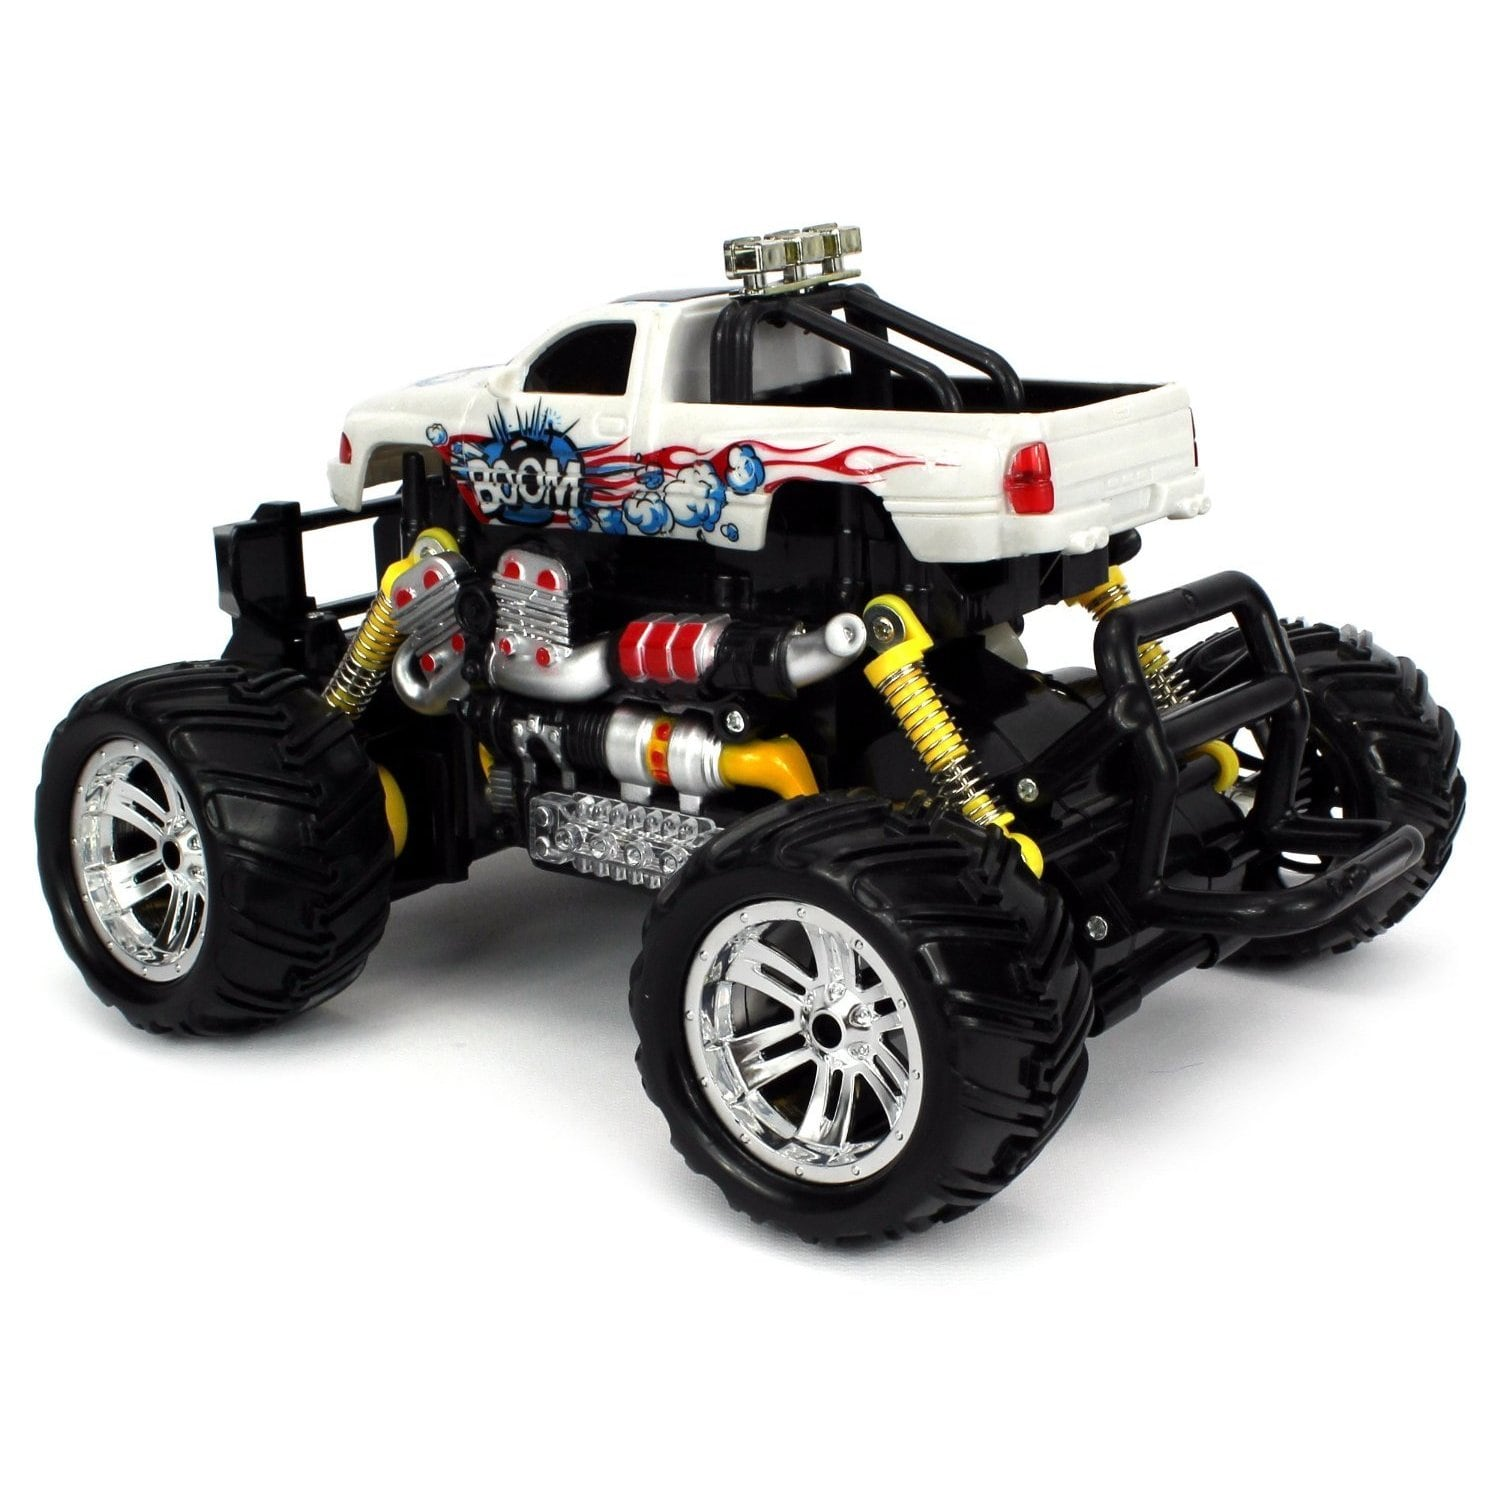 Graffiti V 2 Dodge Ram Pickup Battery Operated Rc Off Road Monster Truck 1 18 Scale 4 Wheel Drive Rtr Colors May Vary Free Shipping Today